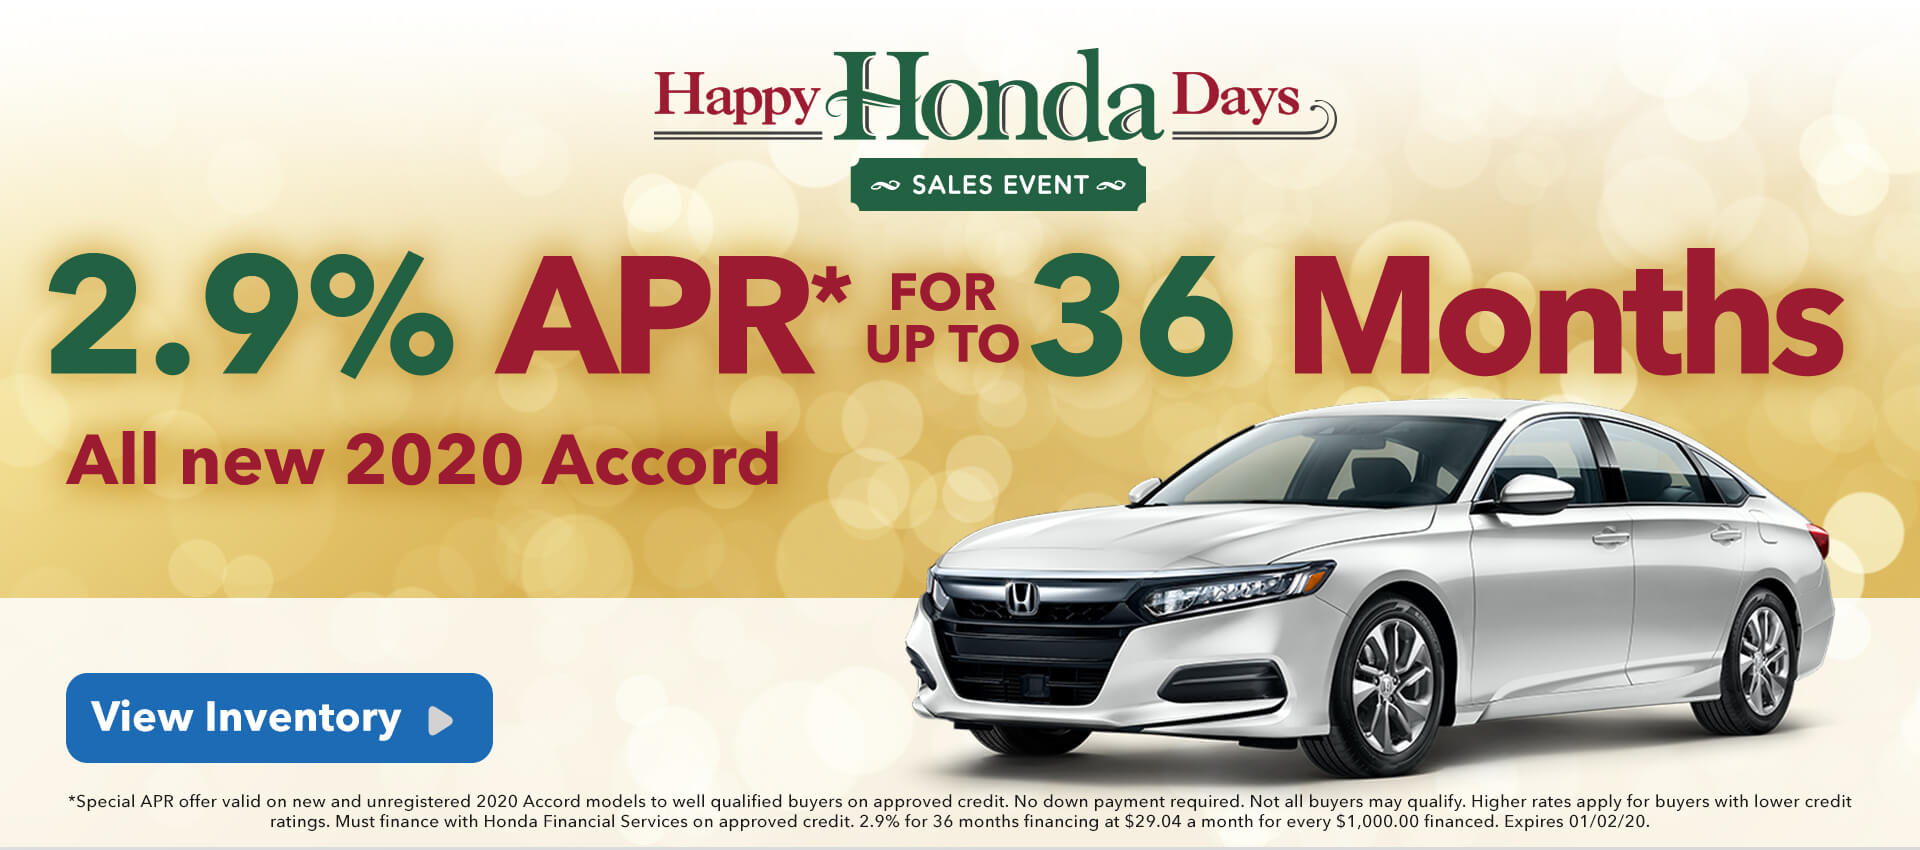 2.9 APR Accord